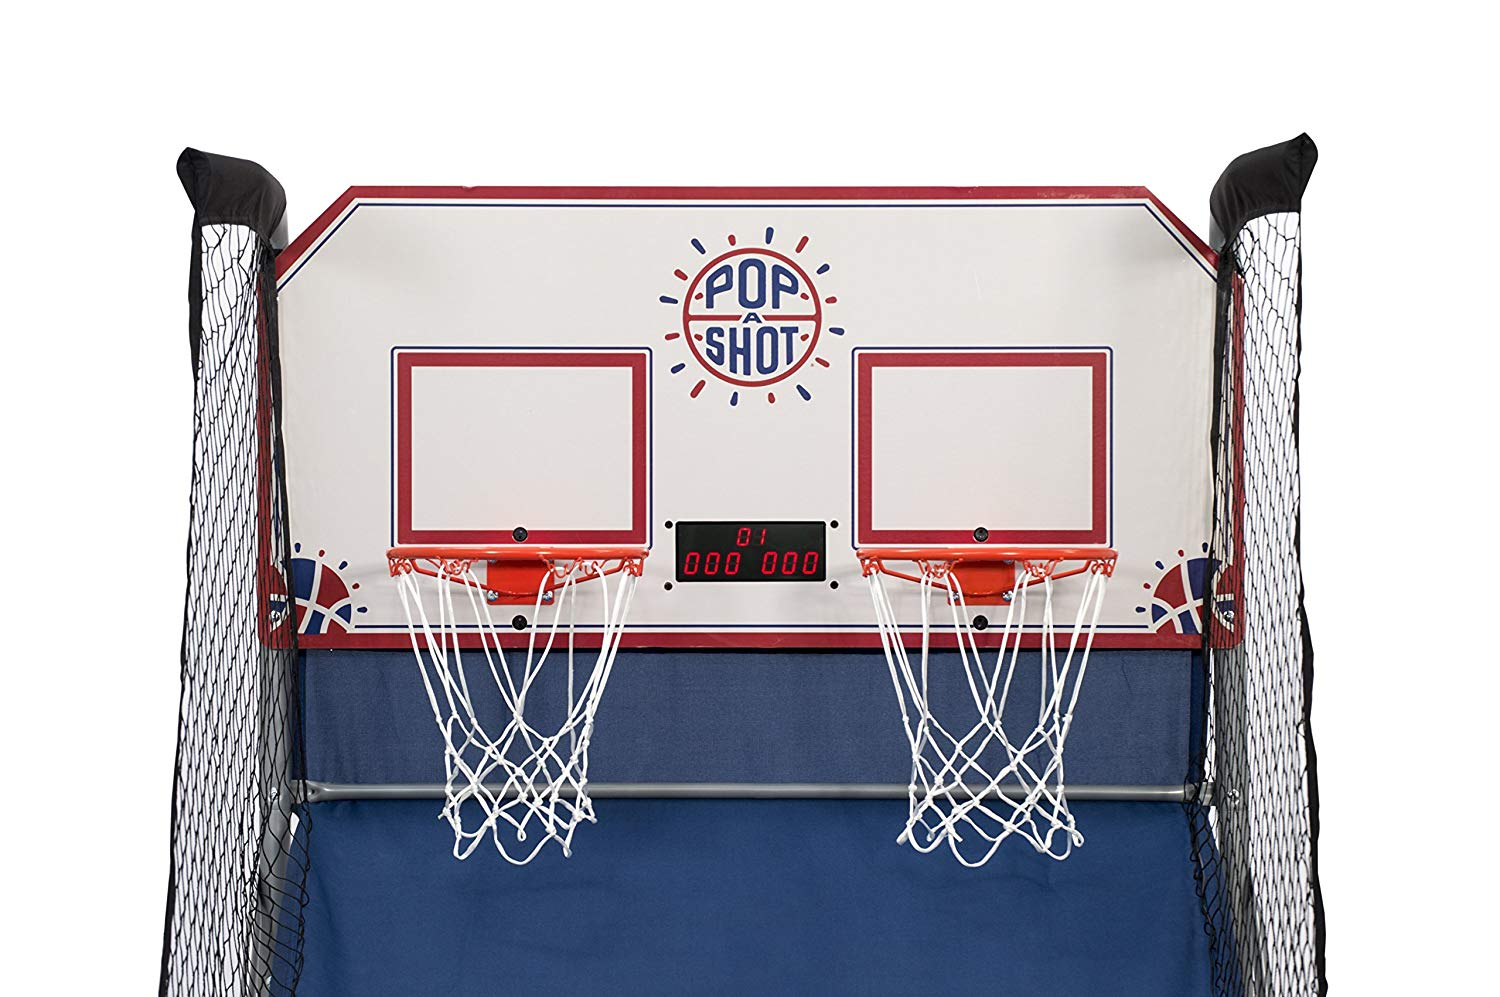 Arcade basketball game with two hoops